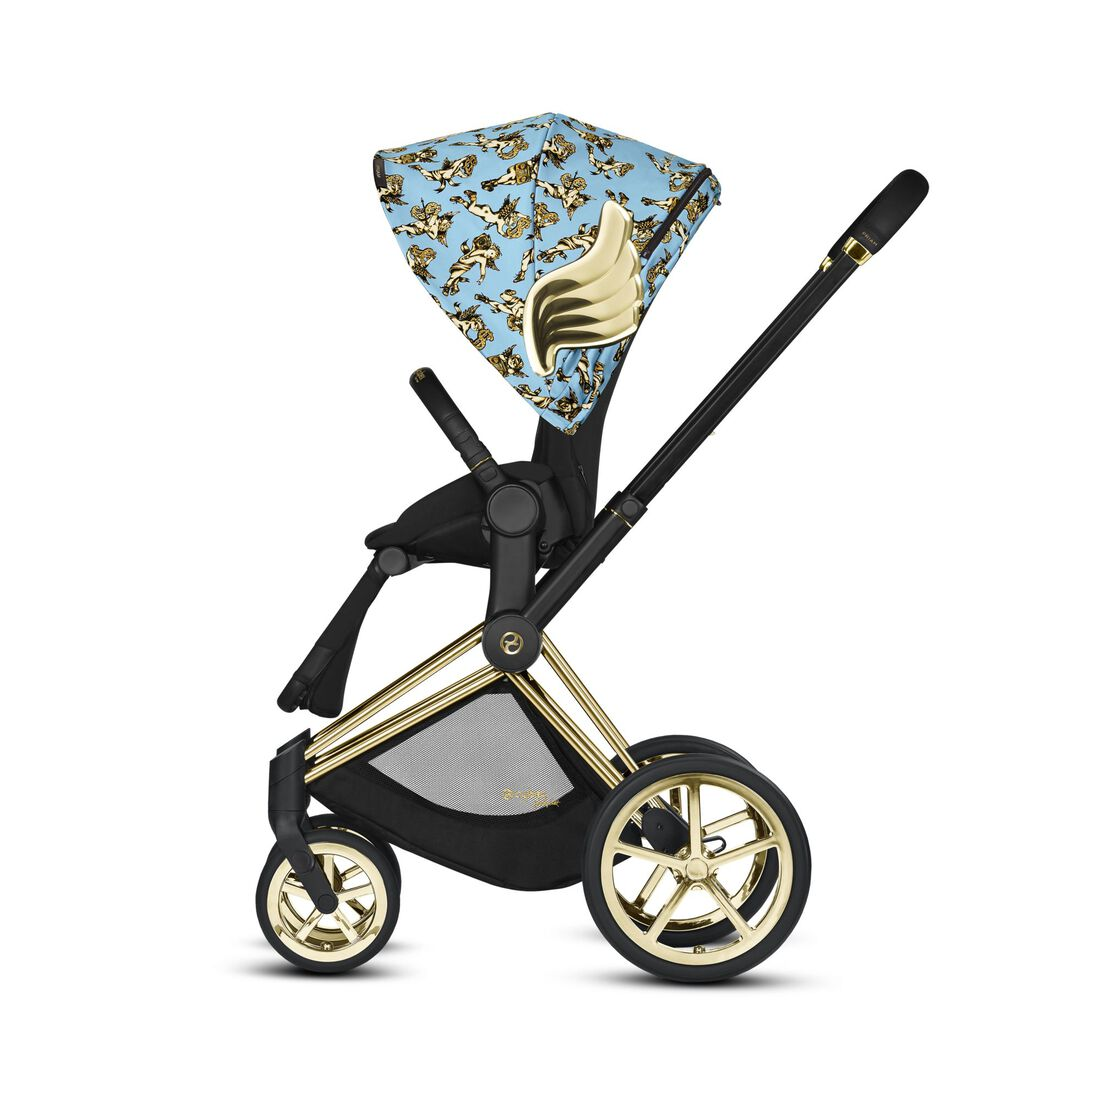 CYBEX Priam Jeremy Scott - Cherubs Blue in Cherubs Blue large Bild 3